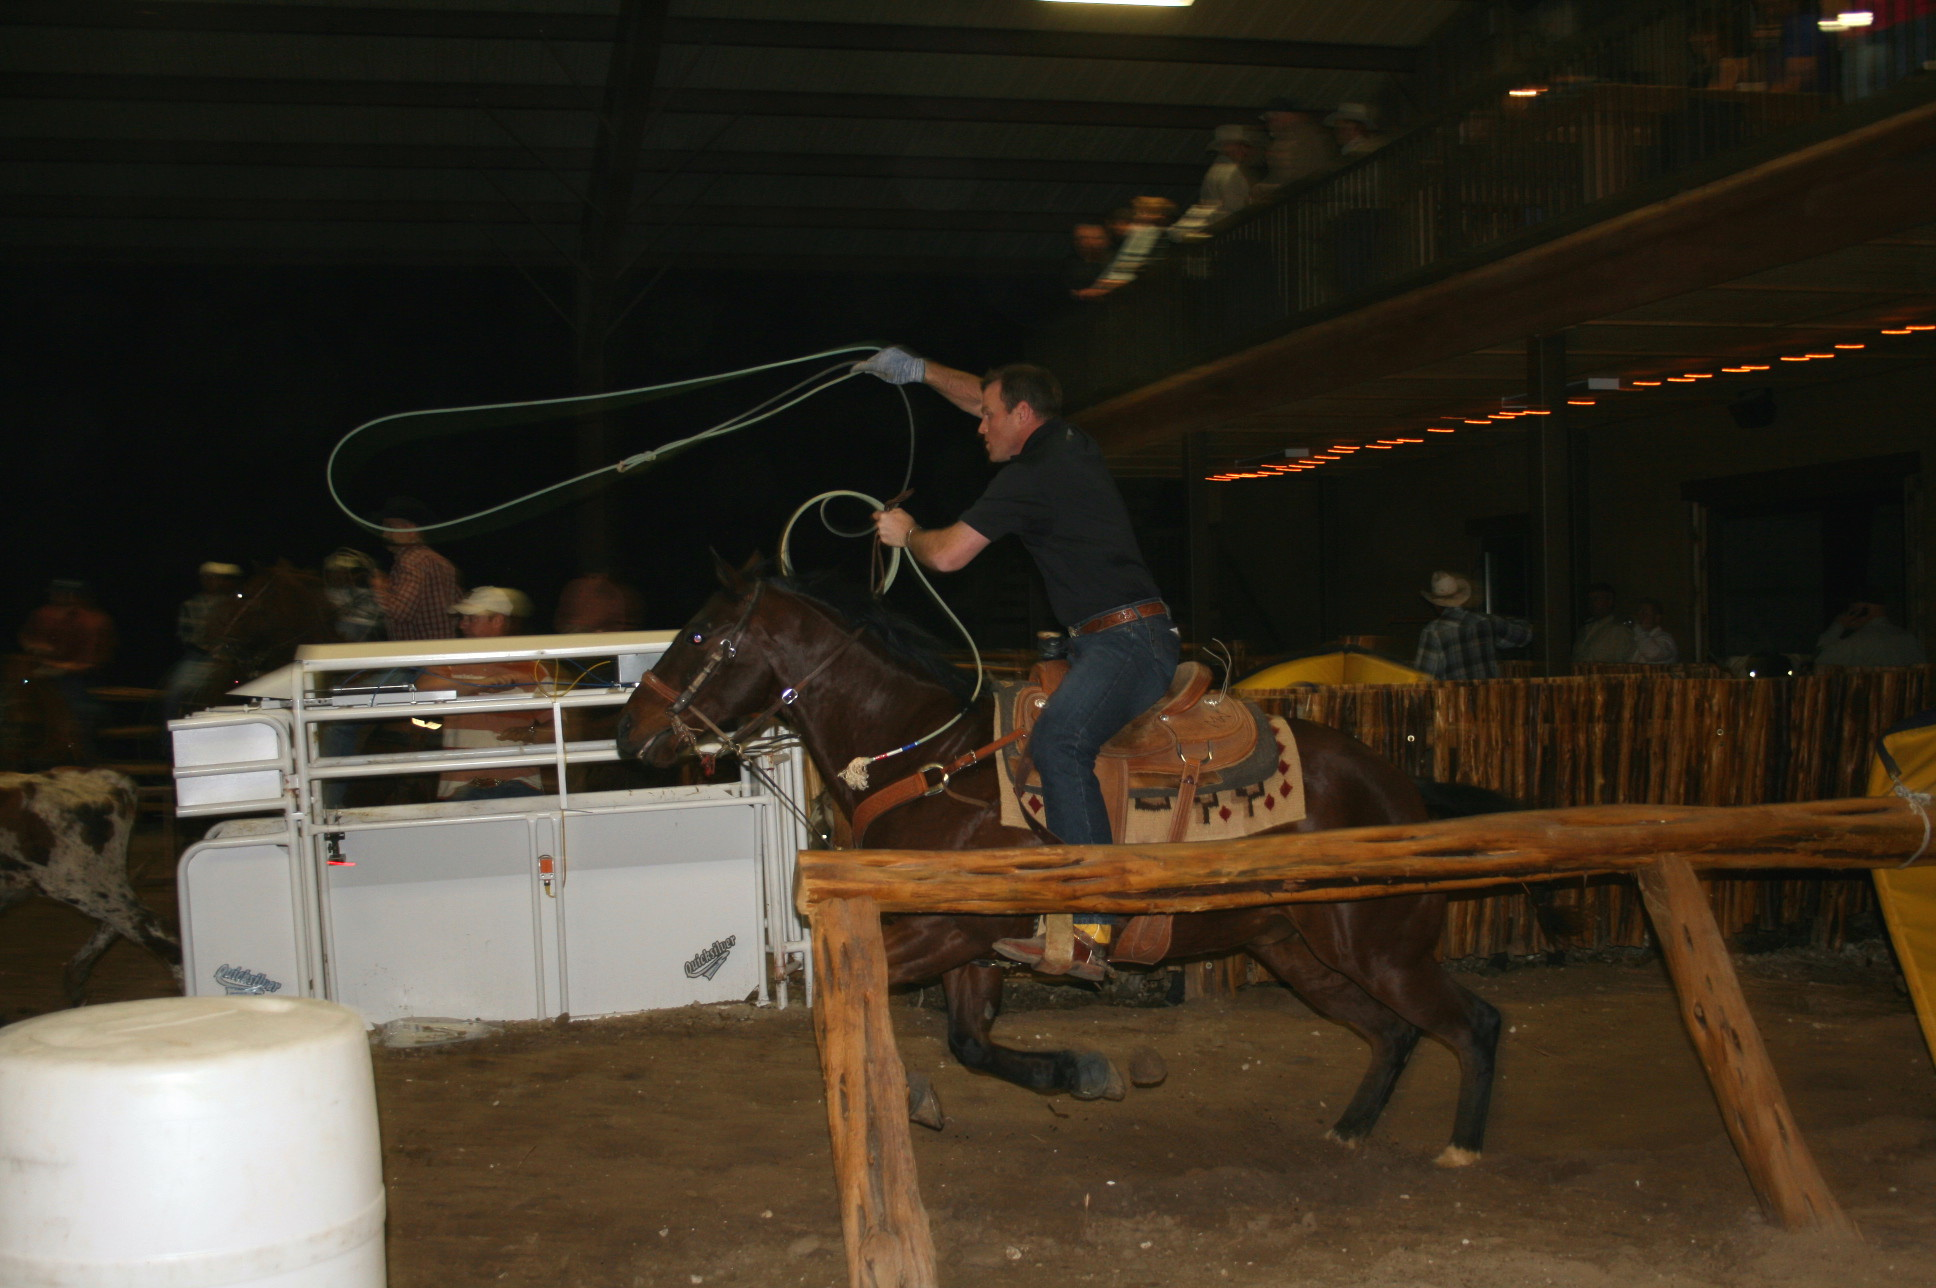 http://store.zcubes.com/C49CEADC5B984C1EAA8AC4996A38595D/Uploaded/Allcat%20Team%20Roping_1987.jpg